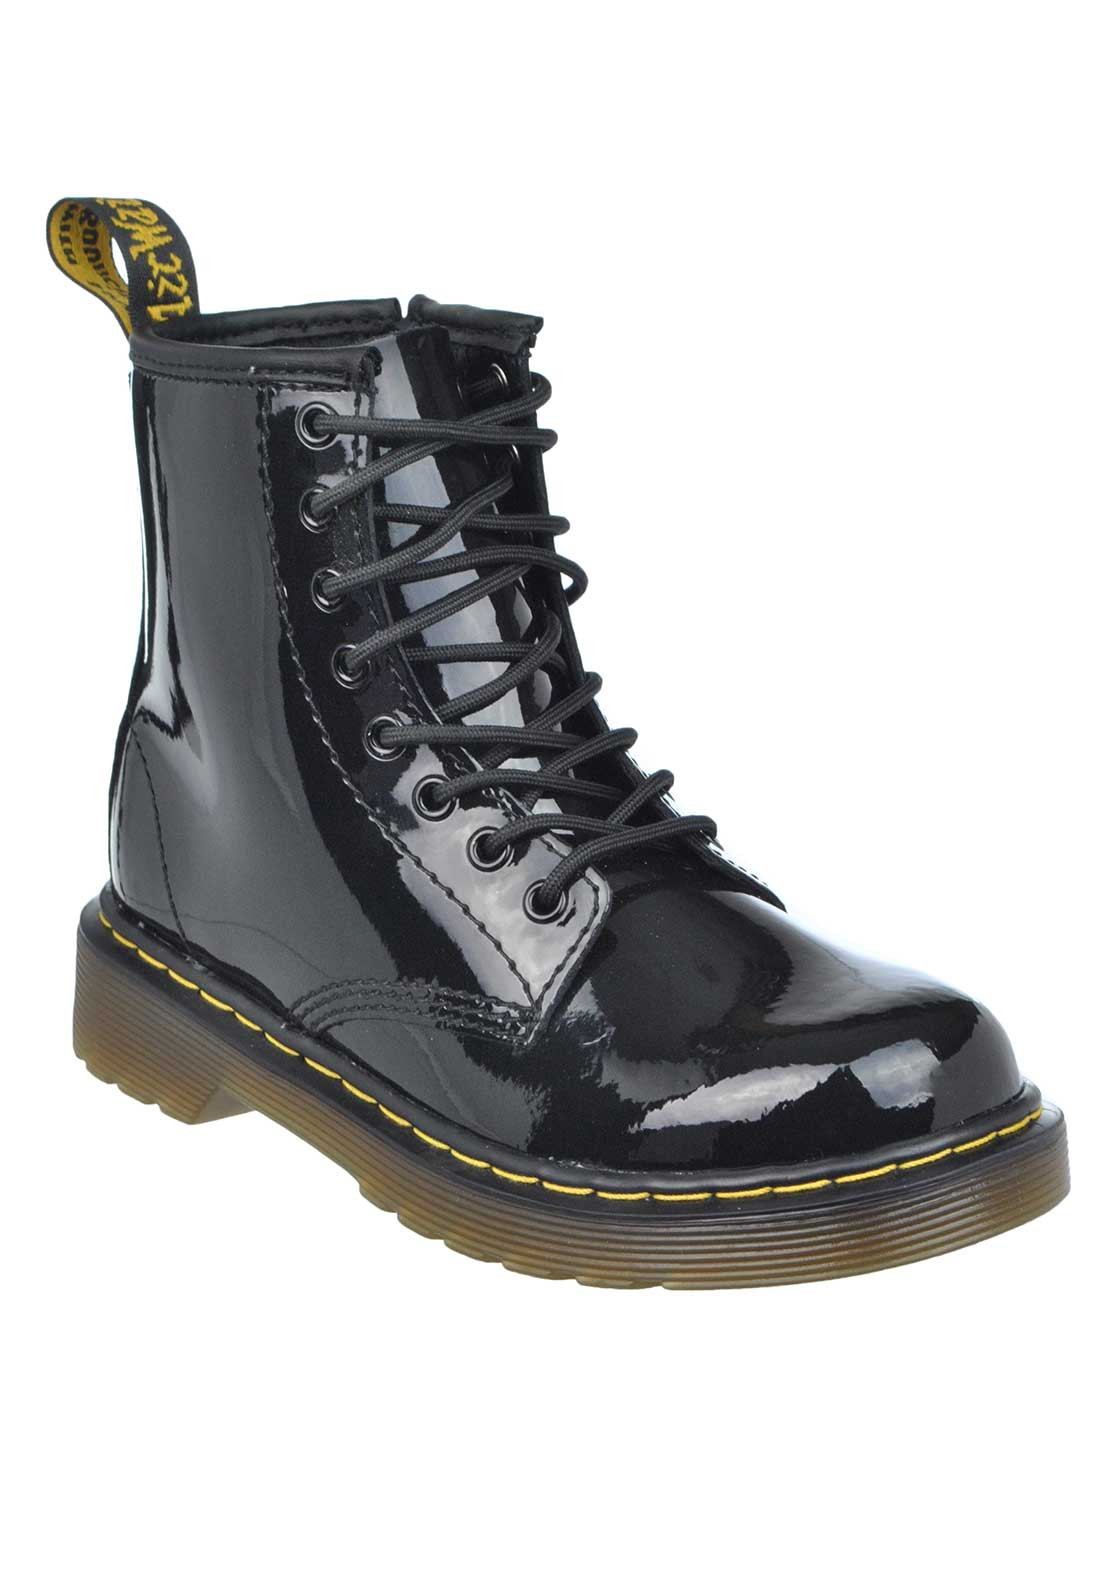 Dr. Martens Airwair Kids Patent Delaney Laced Leather Boots, Black